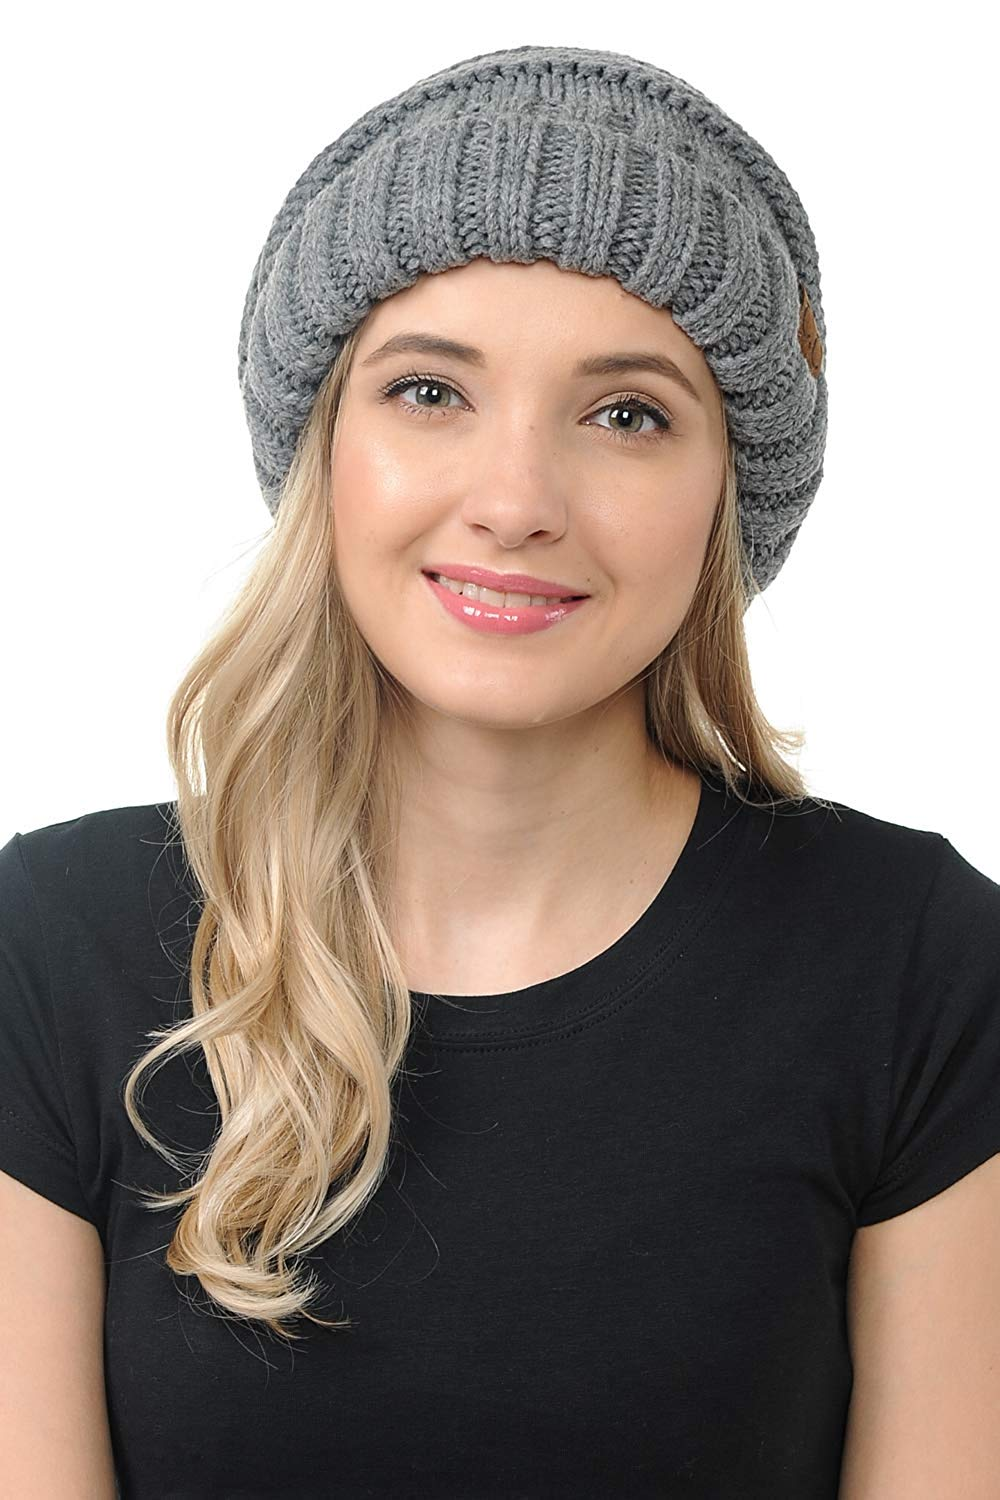 09c435de Get Quotations · BYSUMMER C.C. Oversized Stylish Thick Soft Cable Knit  Slouchy Warm Winter Beanie Hat